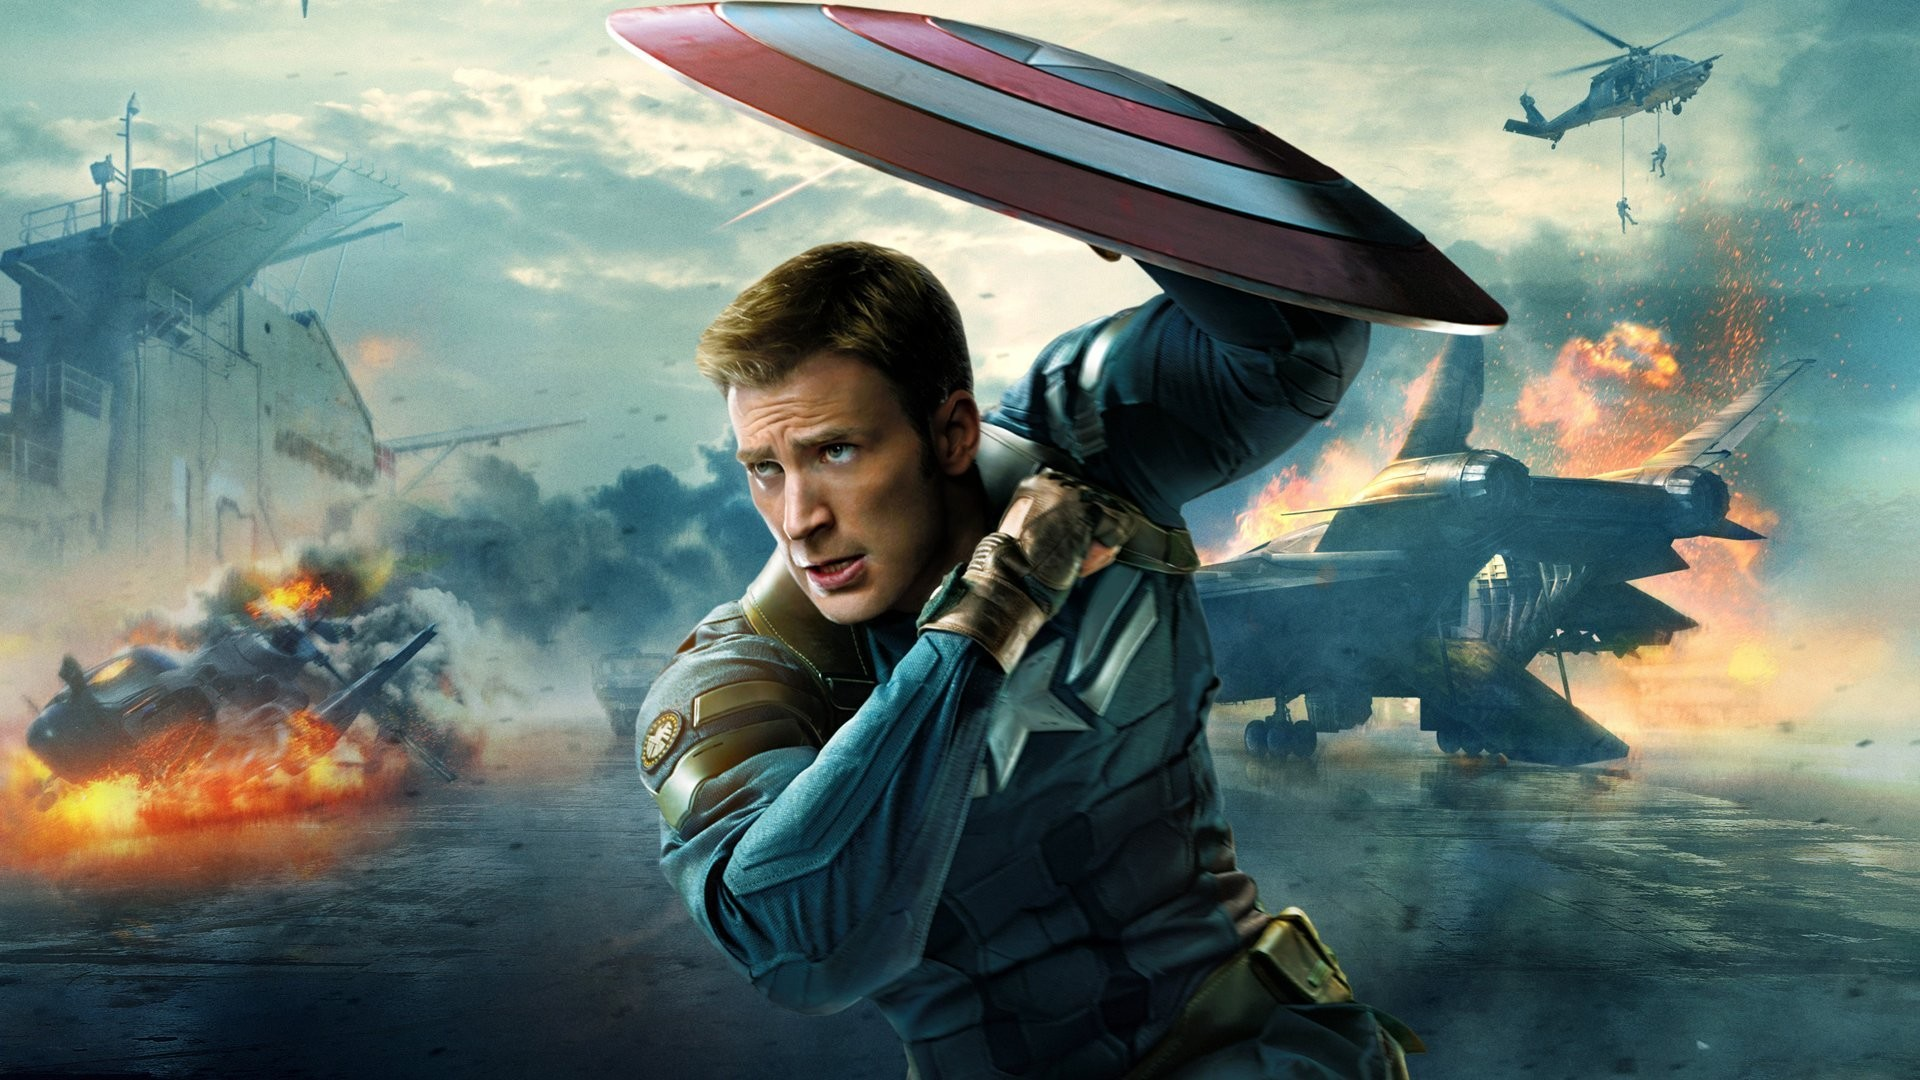 1920x1080 captain america: the winter soldier steve rogers chris evans marvel shield